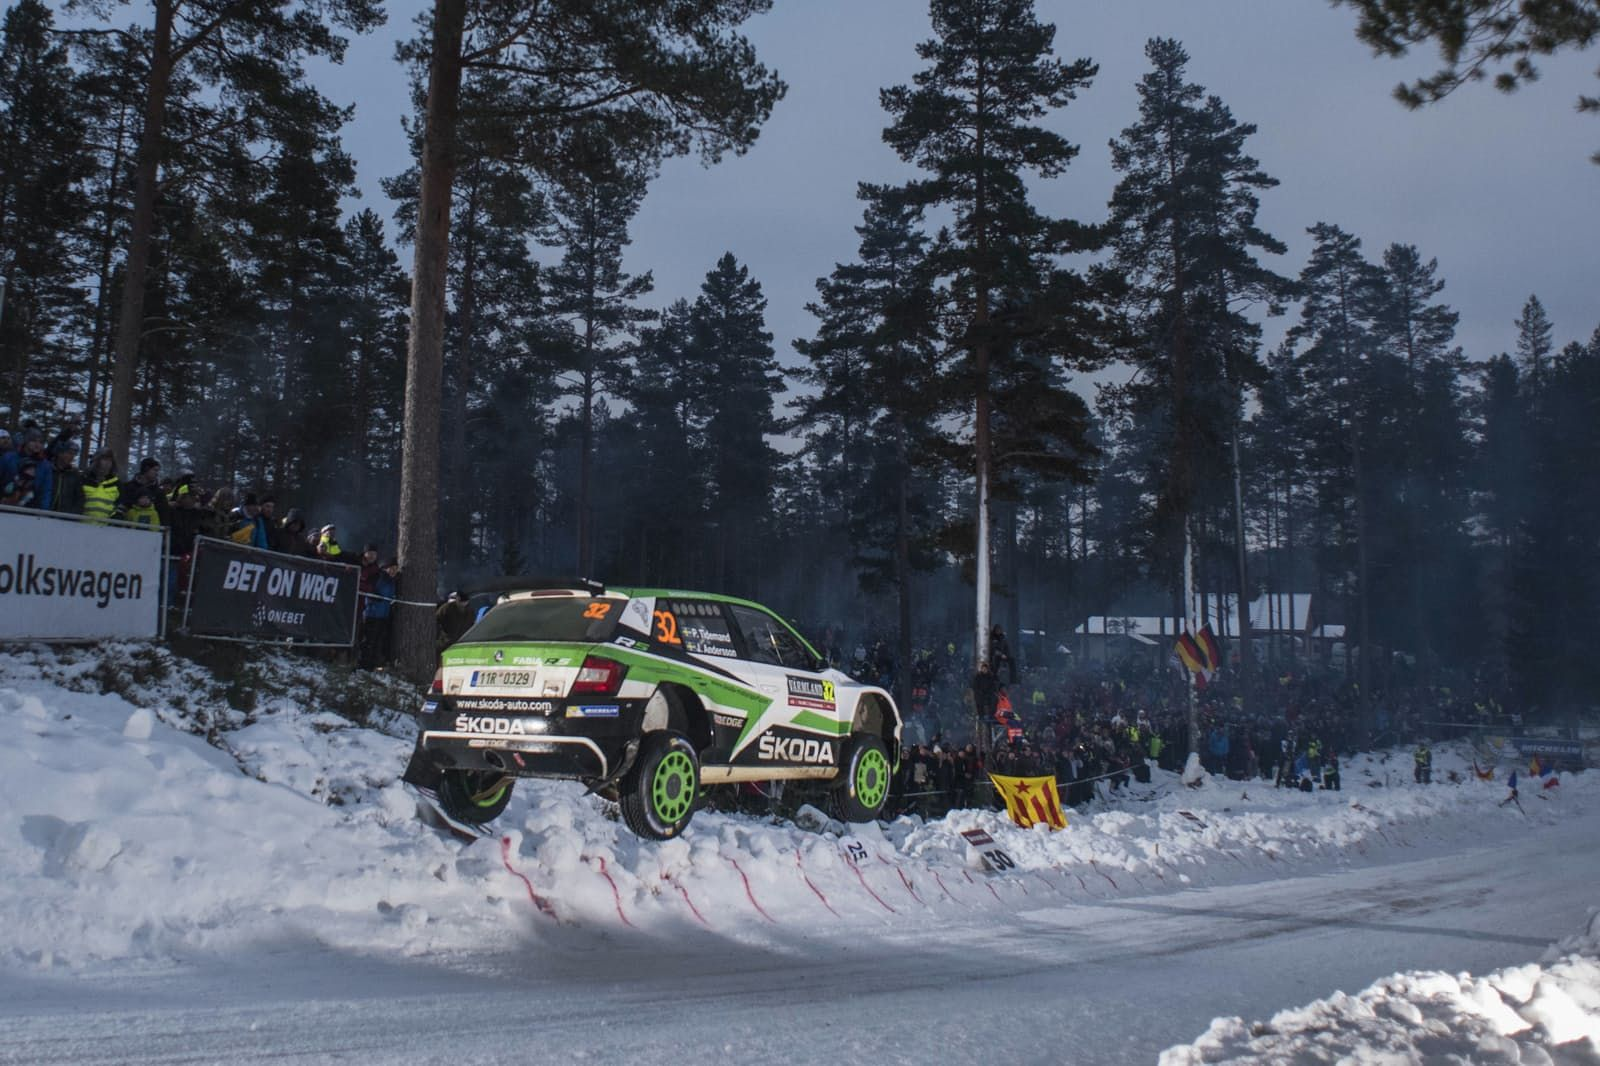 WRC DAY 2 OF THE 2017 RALLY Sweden DRIVETRIBE Rally